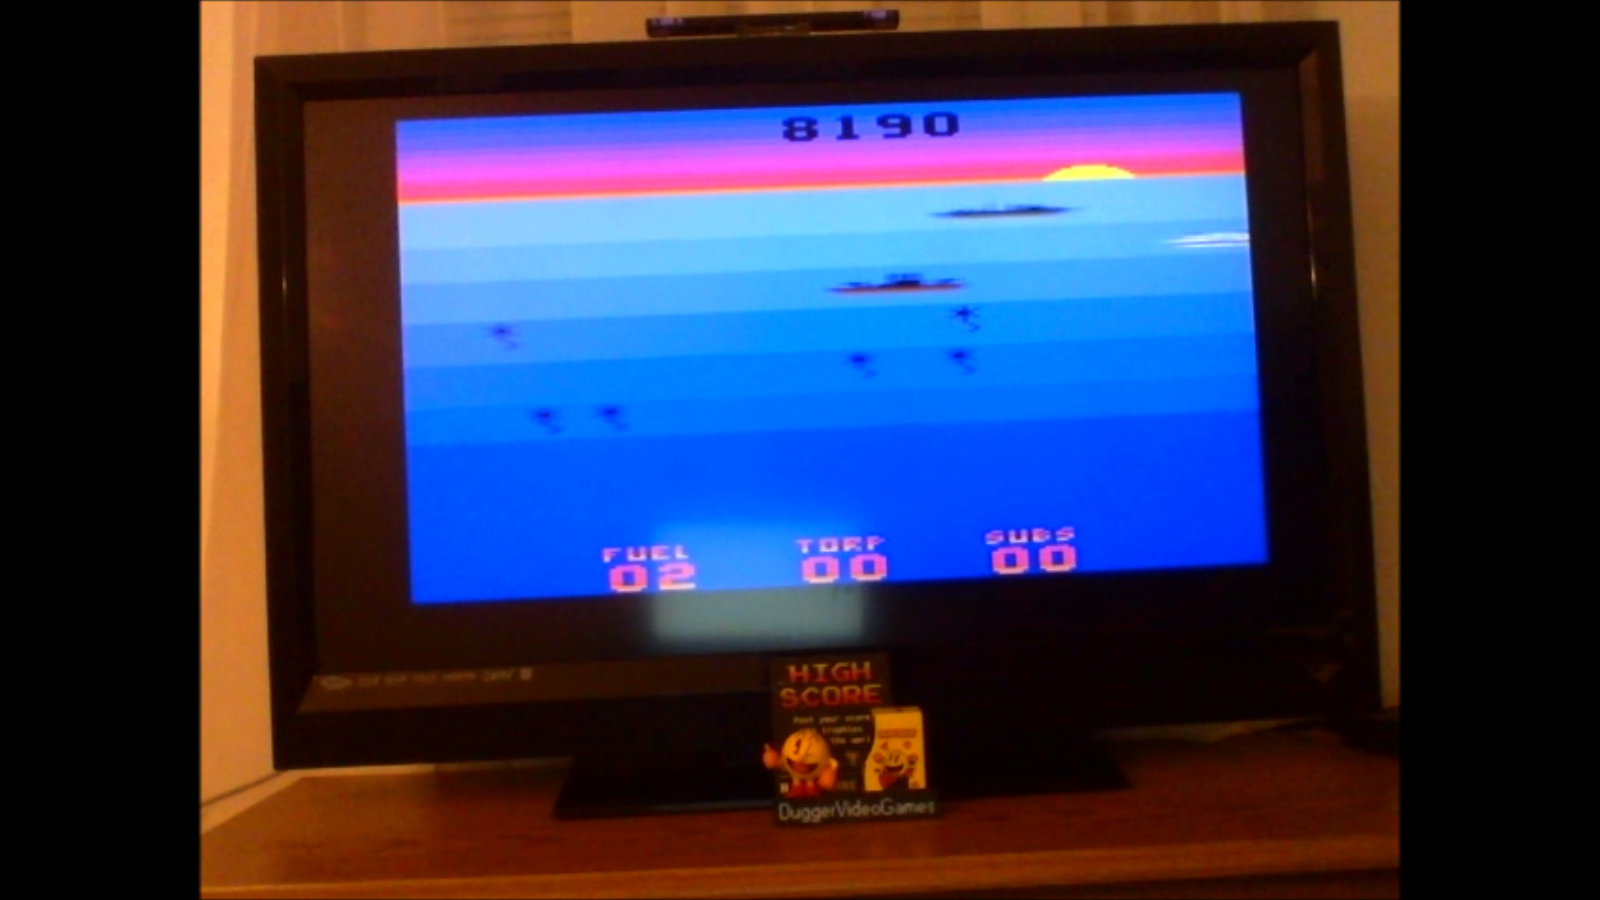 DuggerVideoGames: Seawolf (Atari 2600 Emulated Novice/B Mode) 8,190 points on 2017-01-17 00:44:09